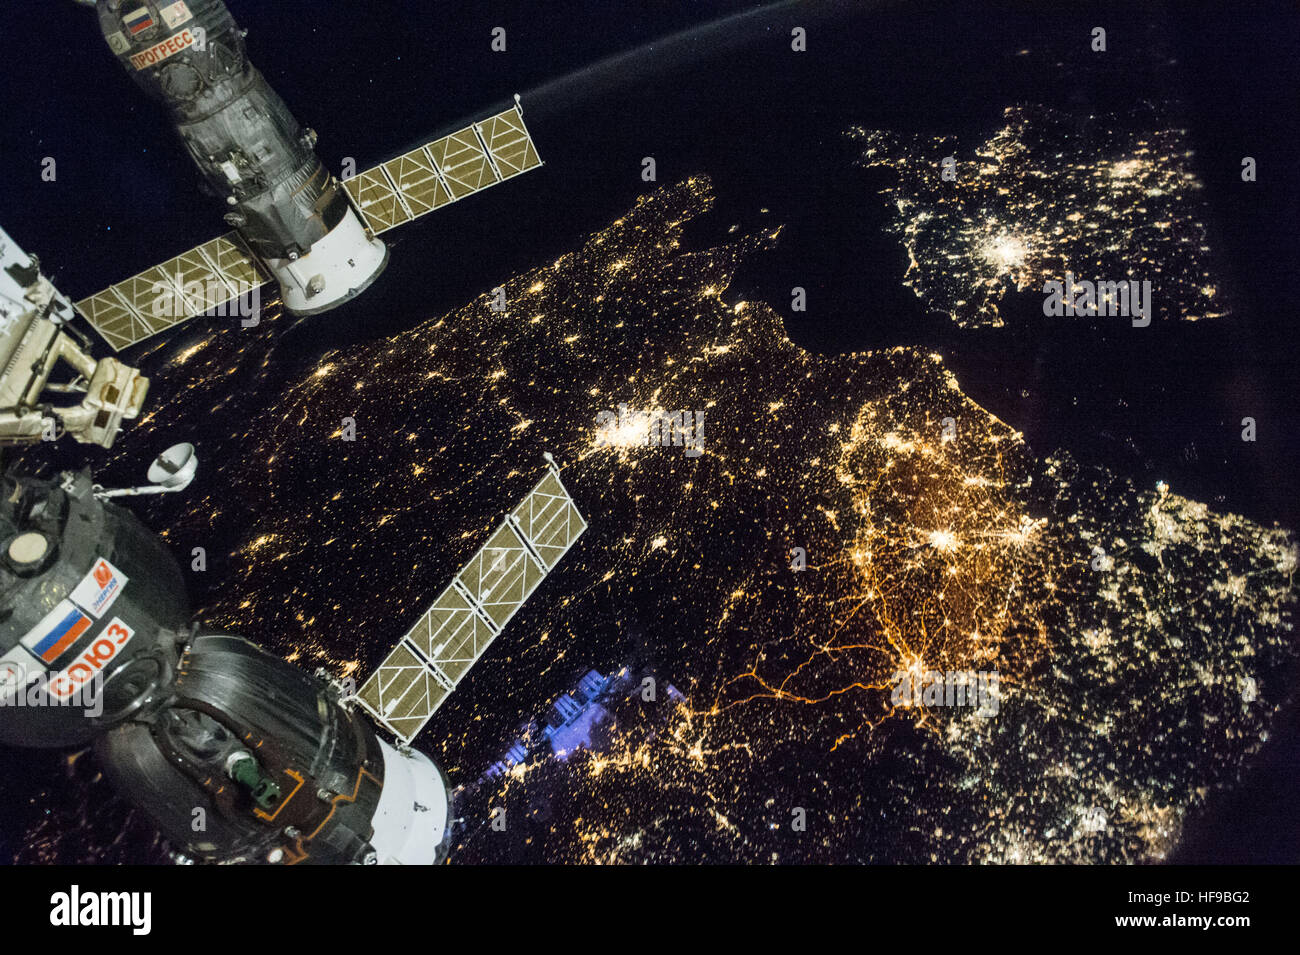 NASA International Space Station Crew Members Capture A Nighttime - Earth satellite view 2016